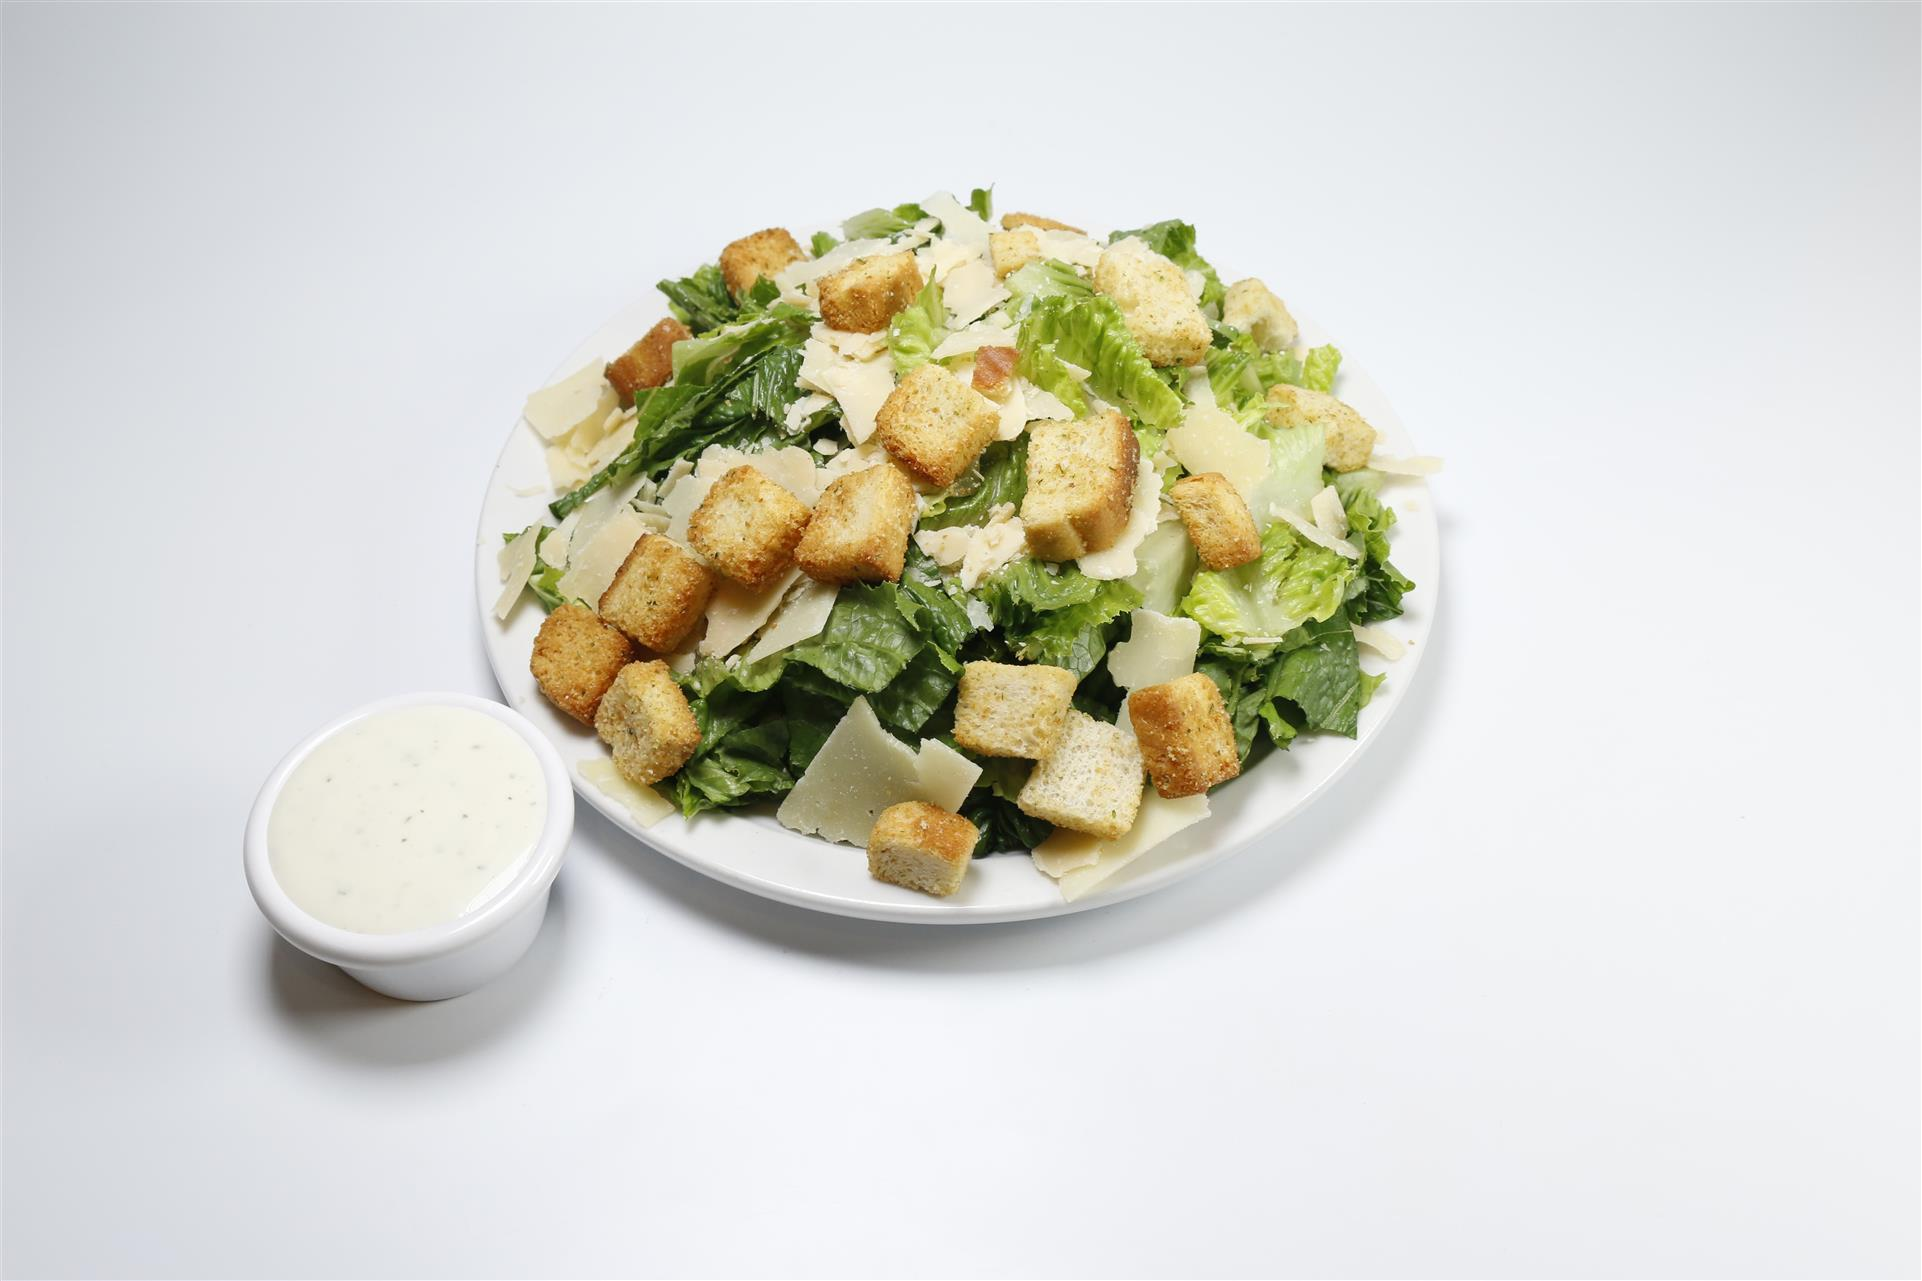 Cesar salad on white plate with croutons, shaved parmesan cheese next to cup of cesar dressing